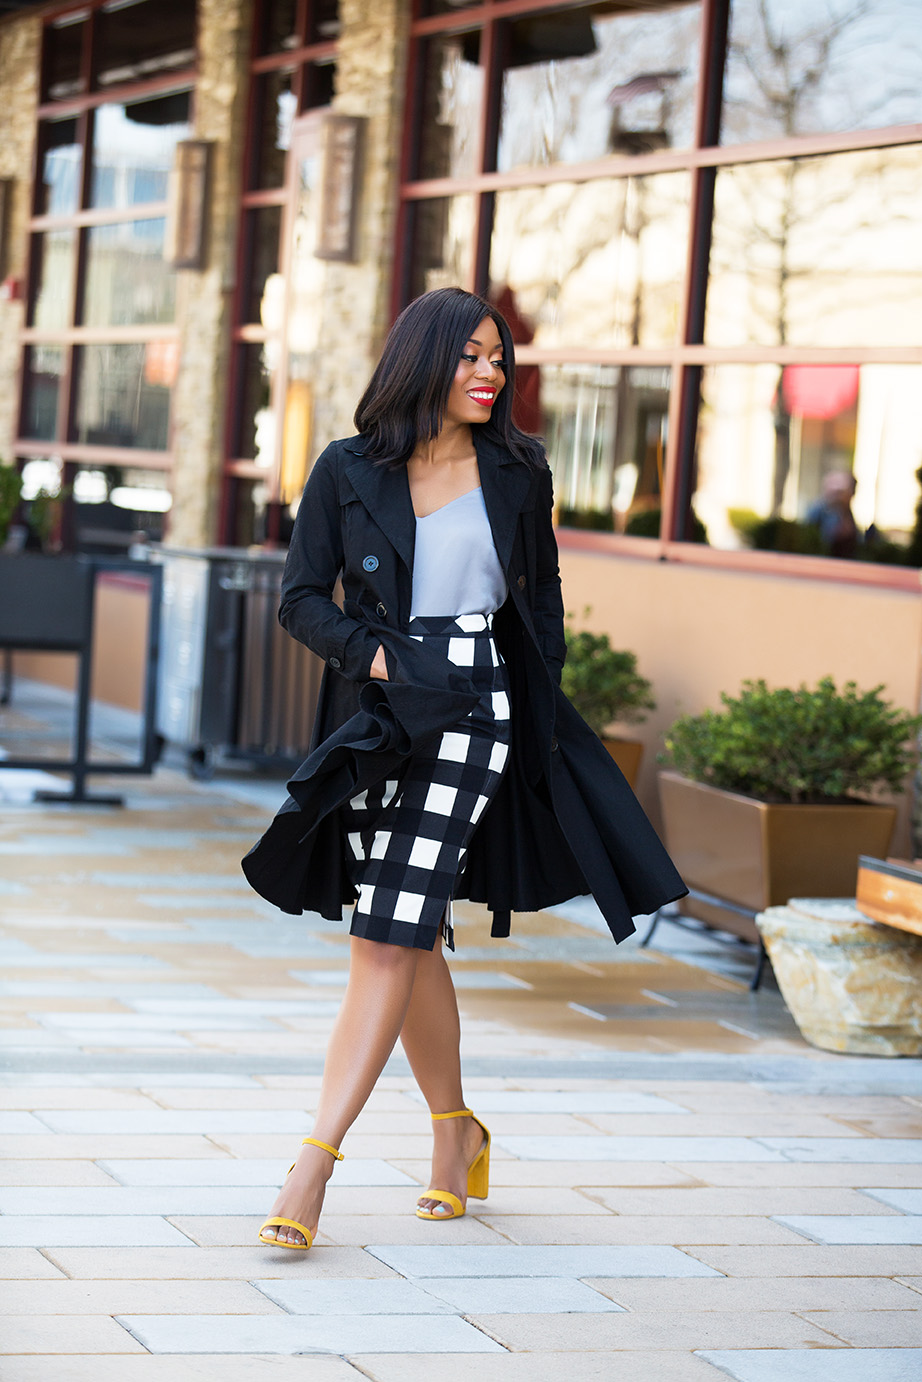 Work Chic outfit ideas, Work Chic Styles, outfit inspiration for the office